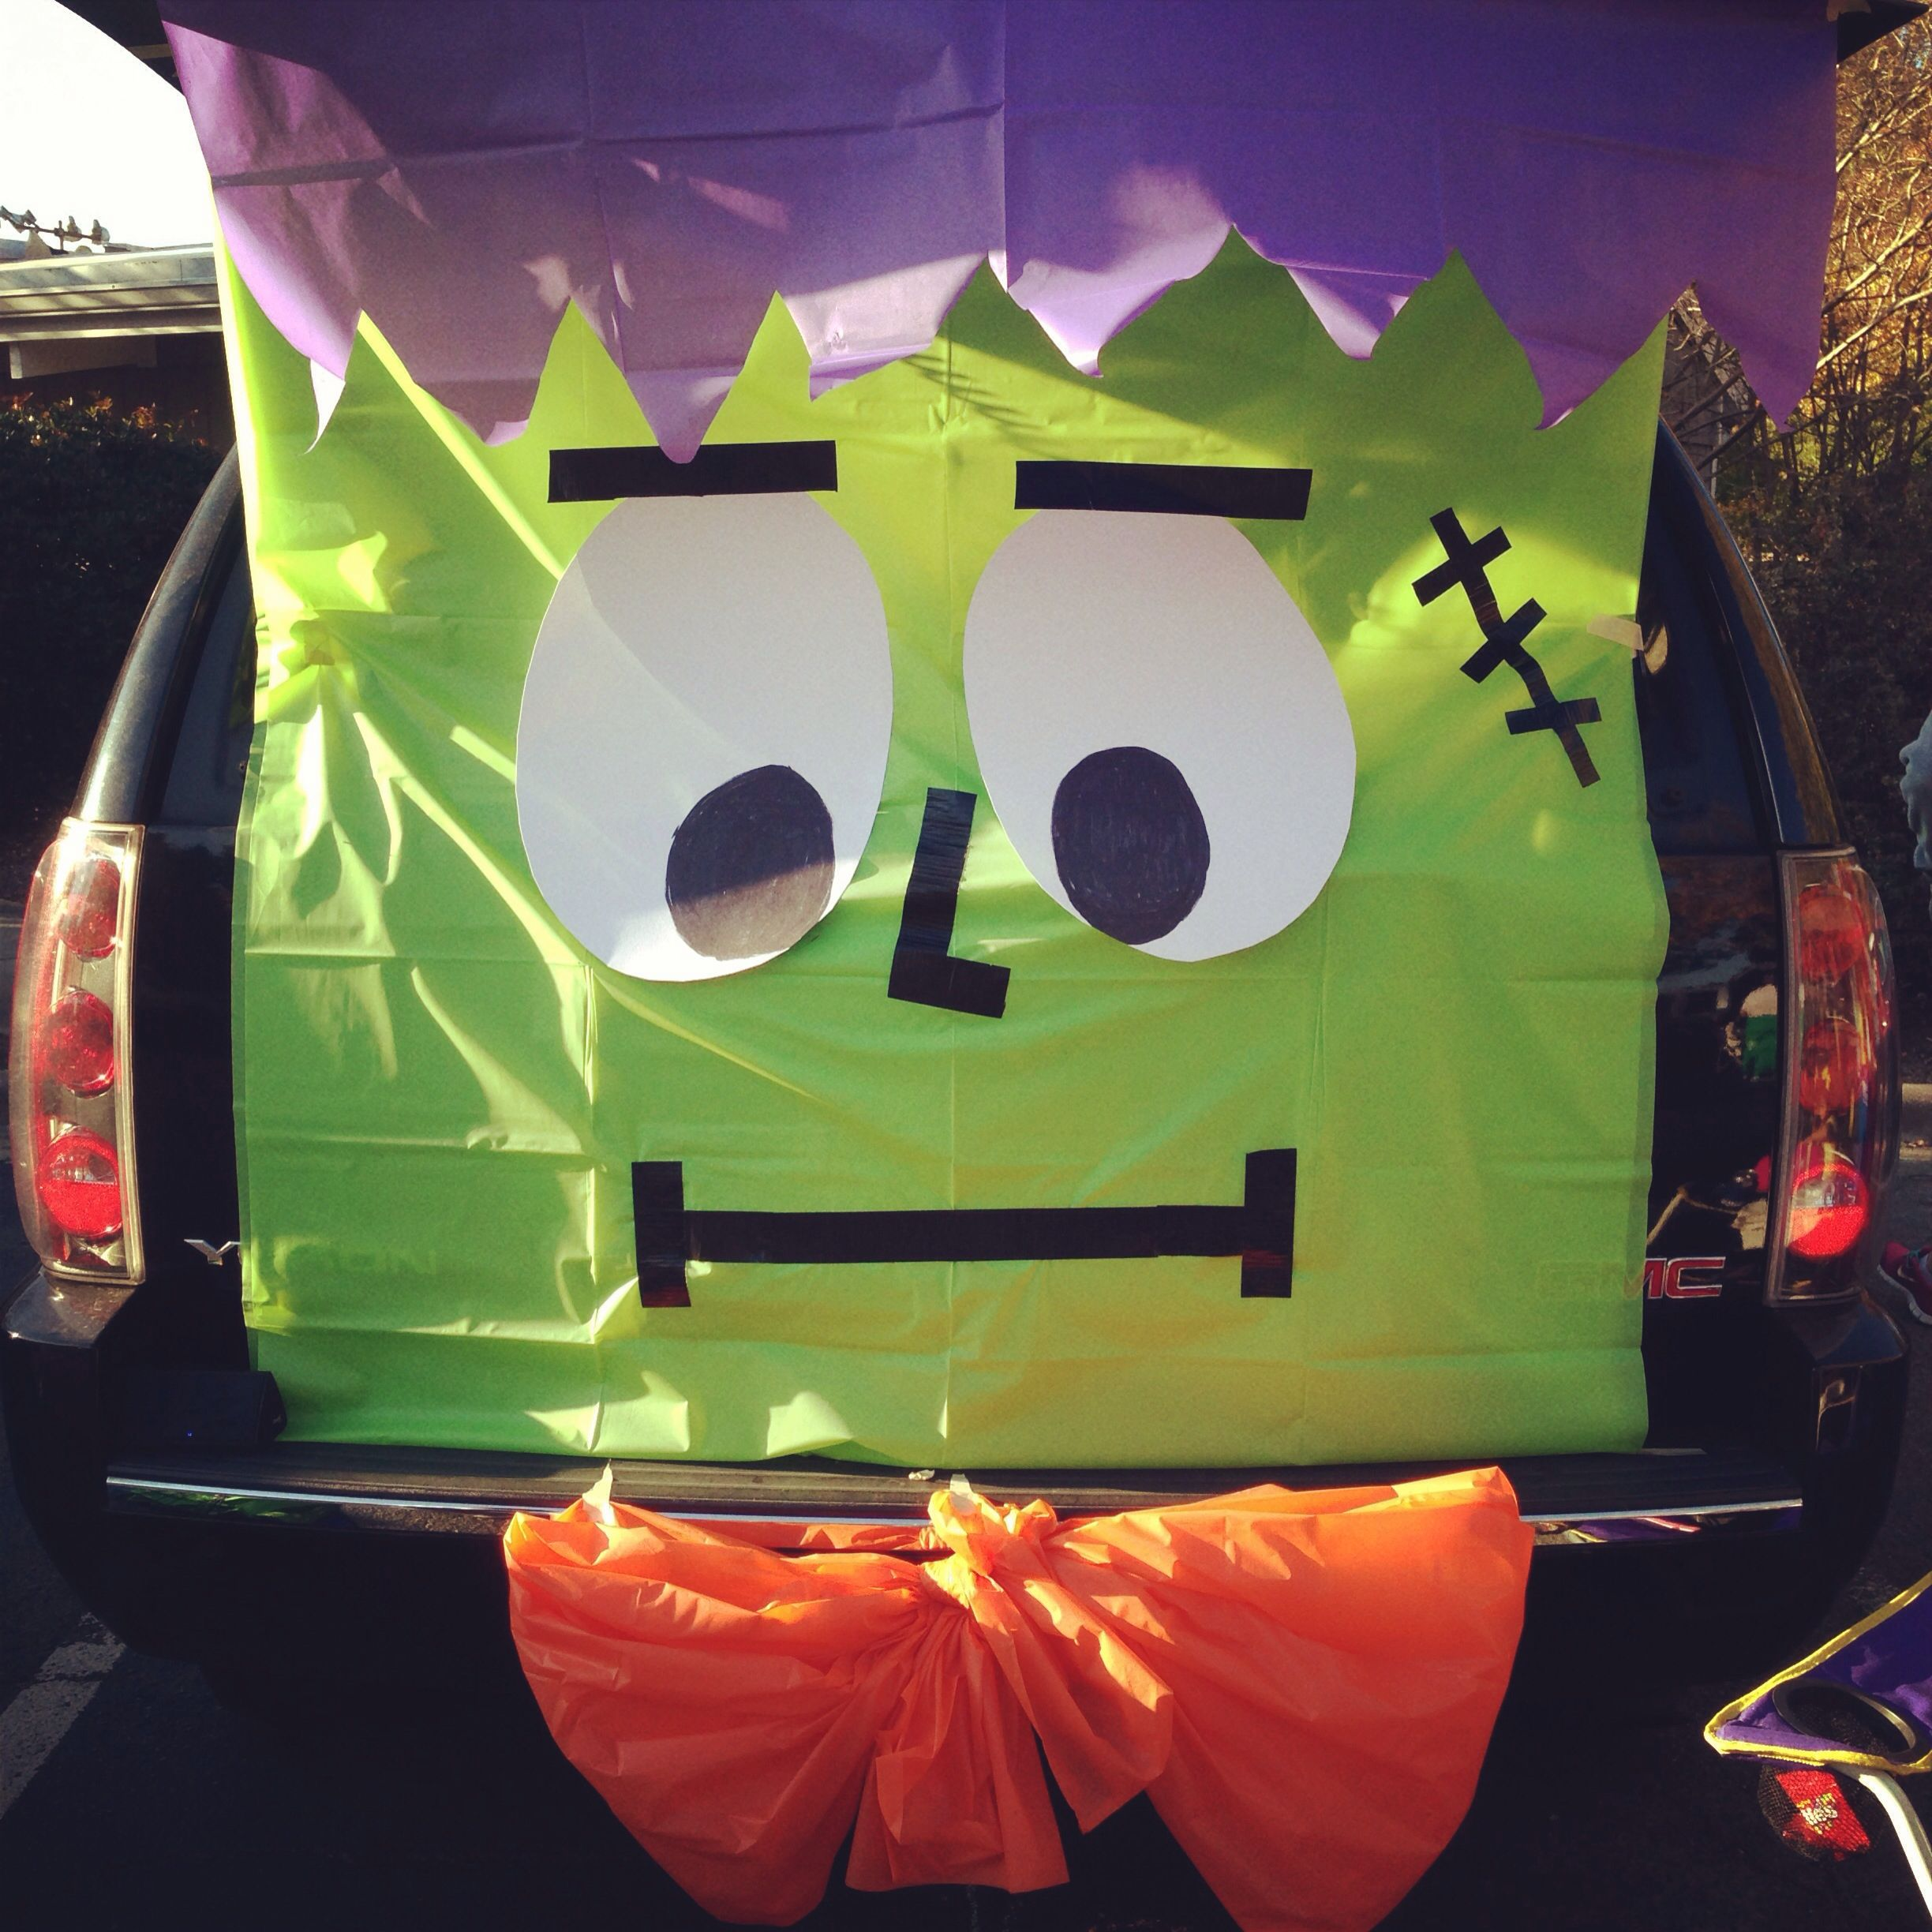 16 Ways to Decorate Your Car For Trunk or Treat | Tip Junkie